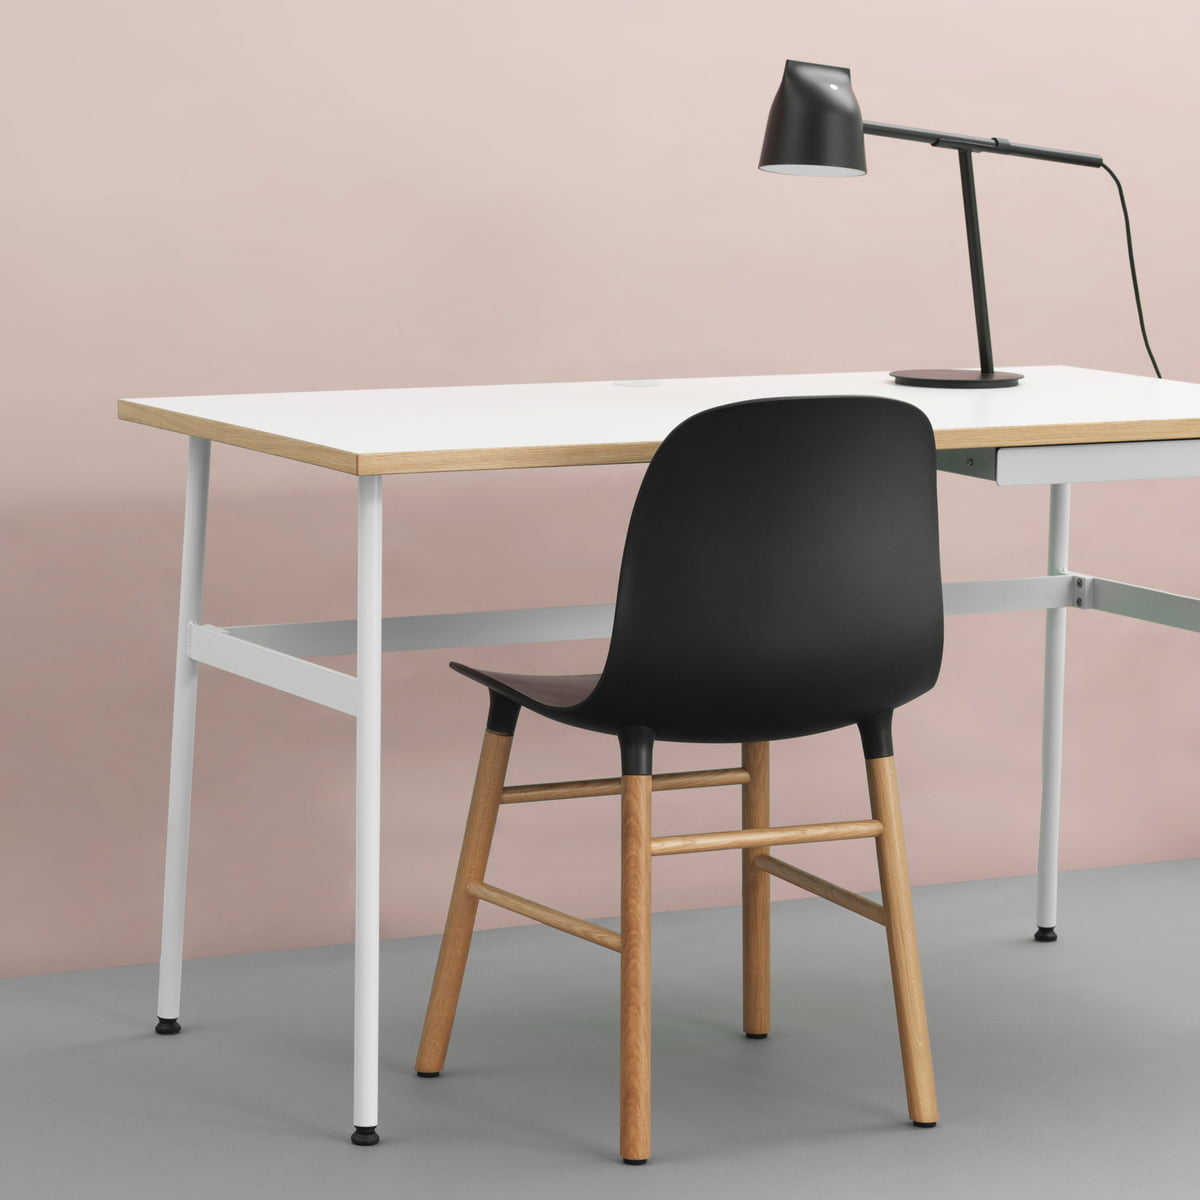 Journal Desk Momento Table Lamp And Form Chair